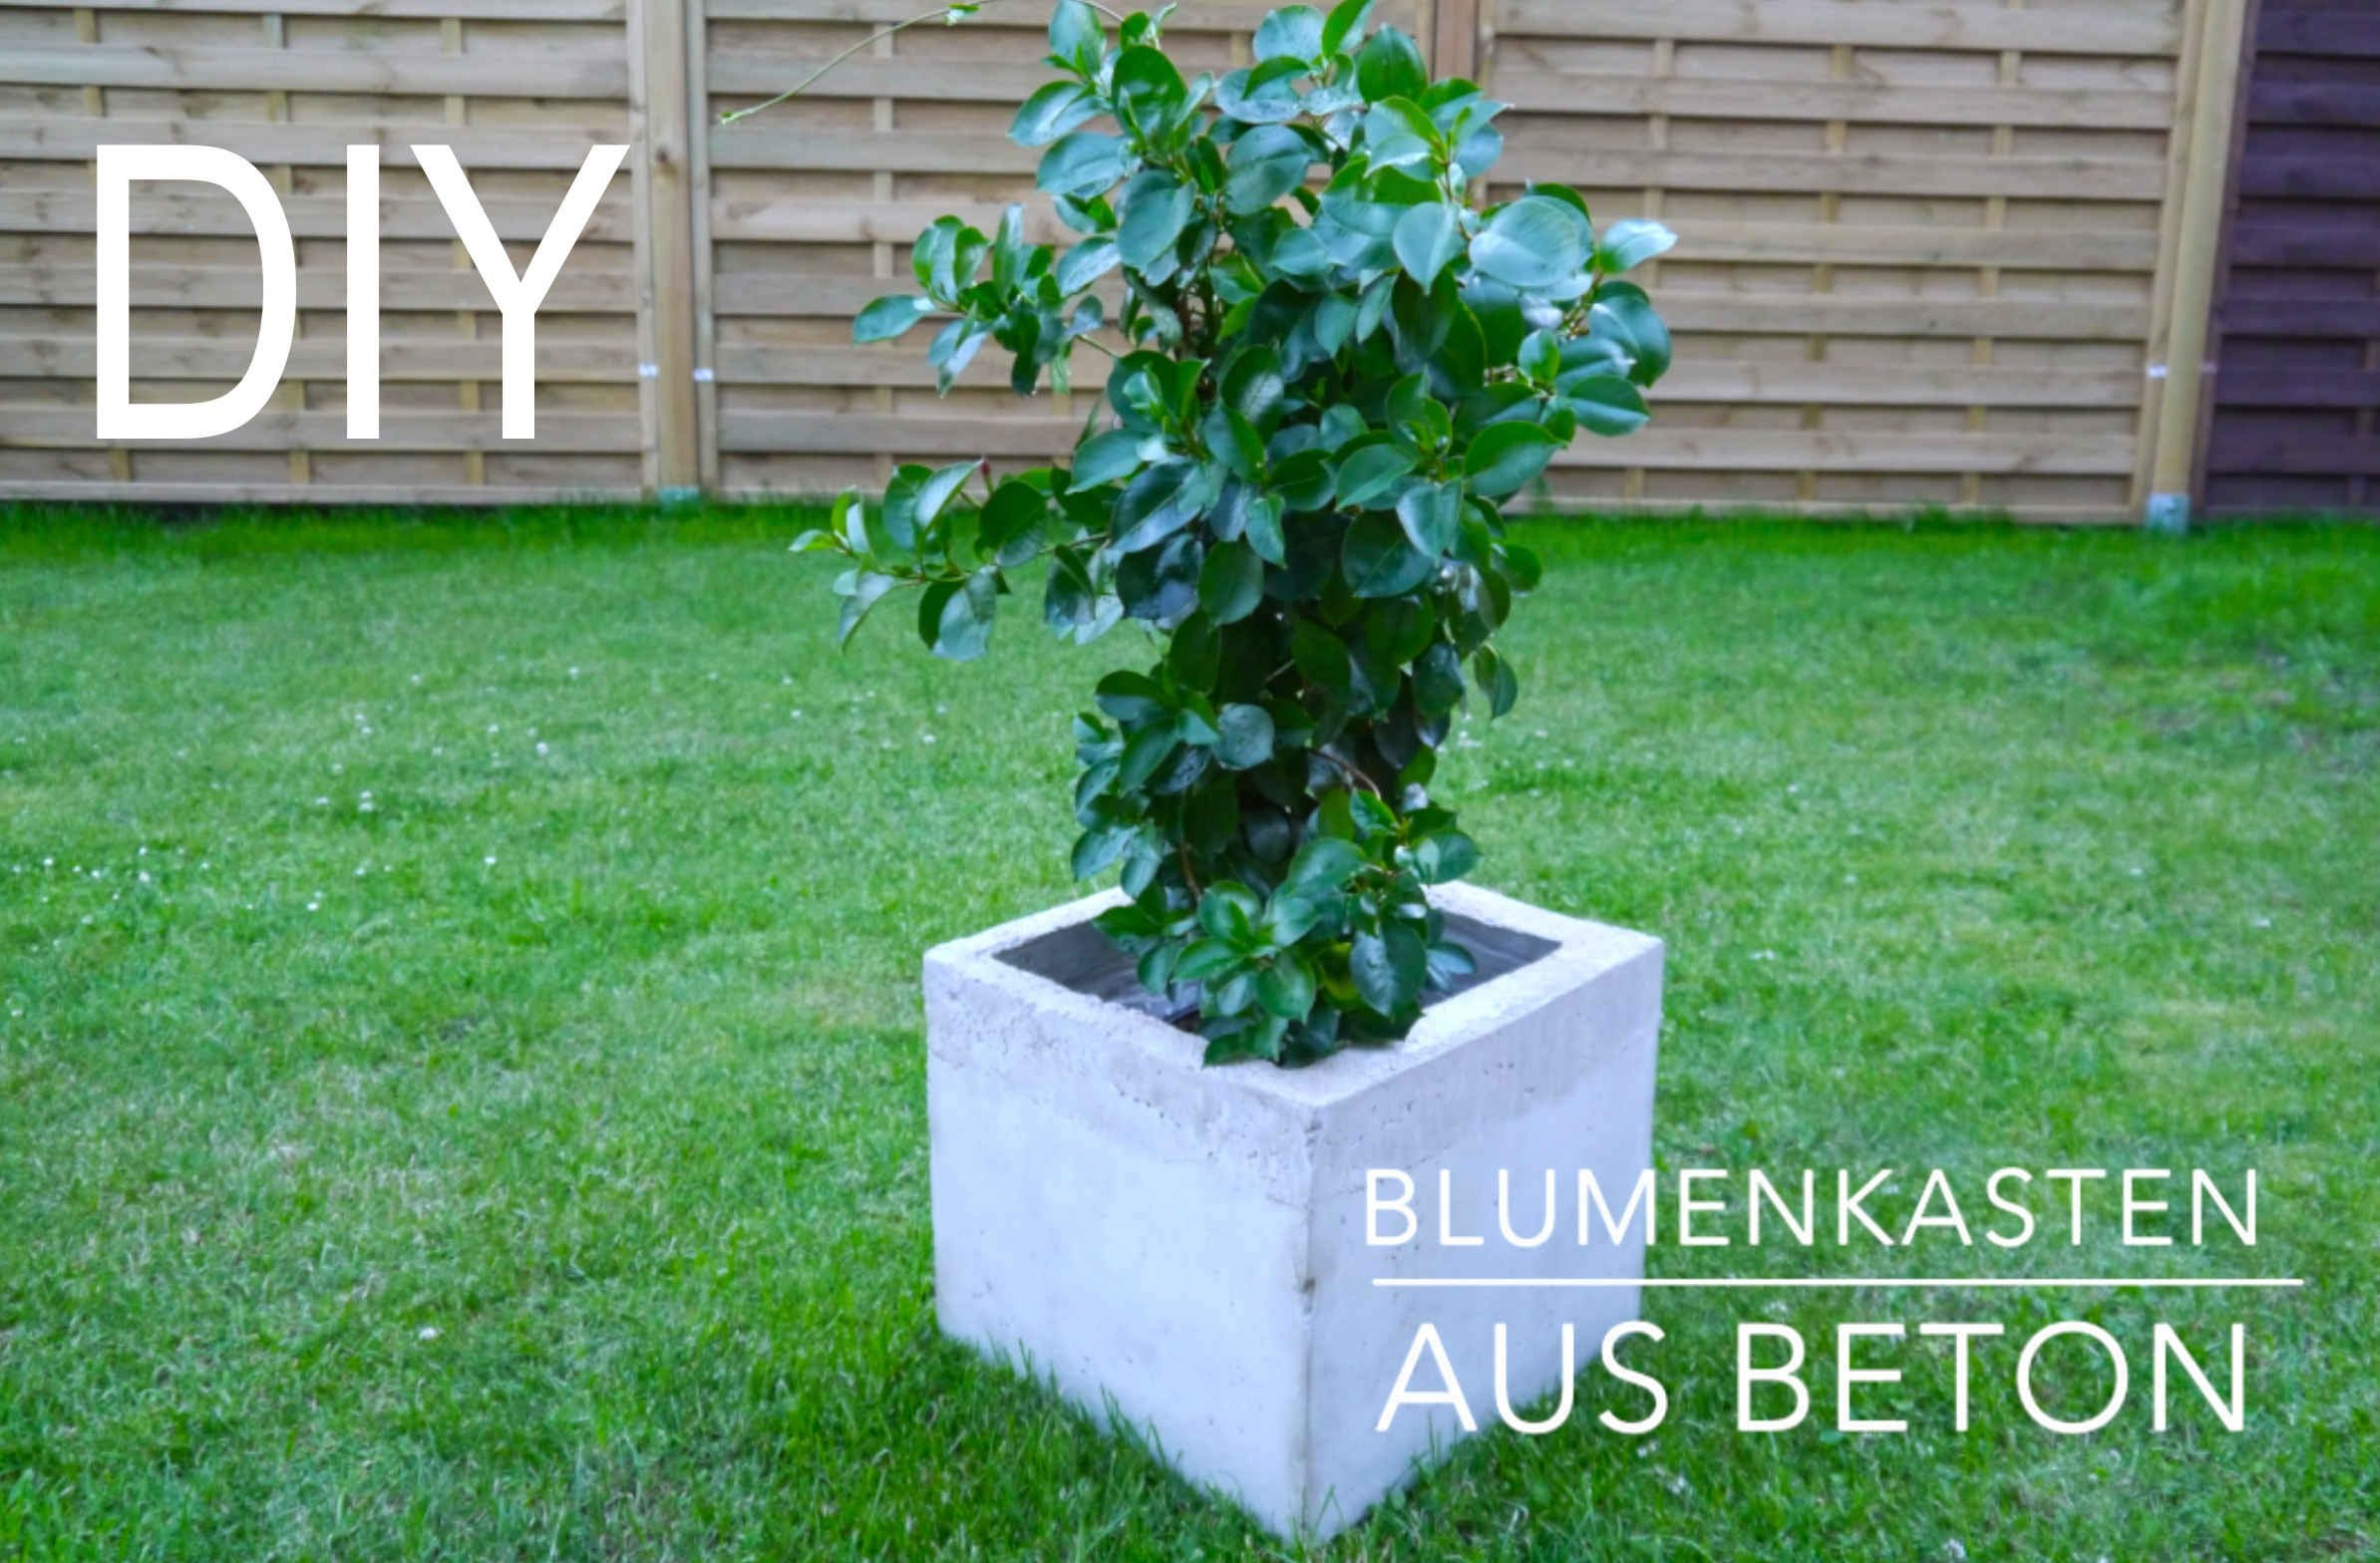 diy blumenkasten aus beton anleitung. Black Bedroom Furniture Sets. Home Design Ideas